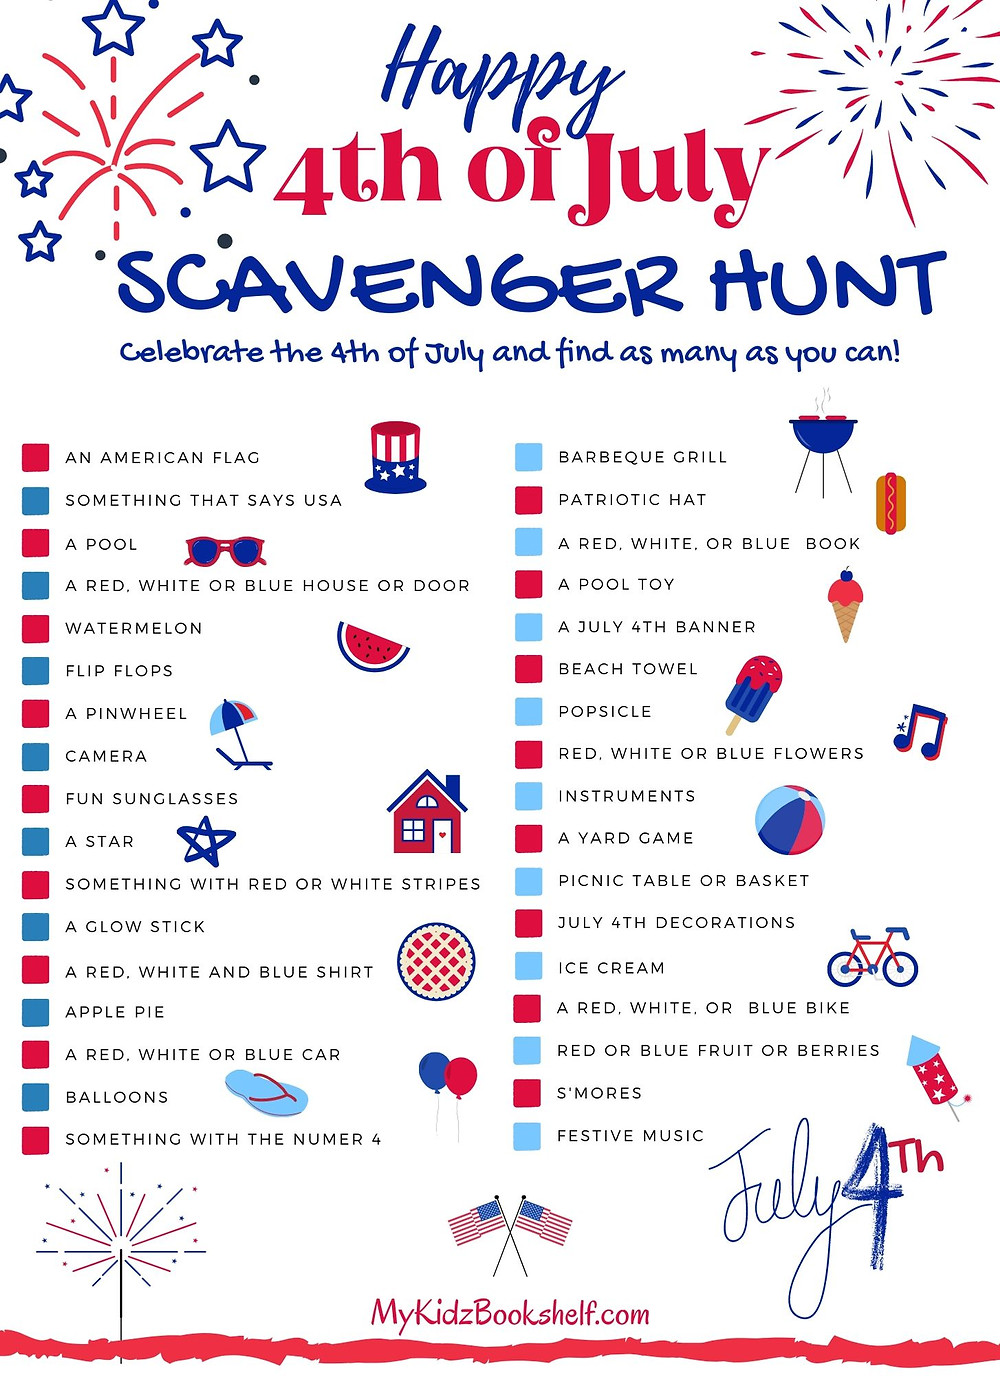 Happy 4th of July Scavenger Hunt Free Printable